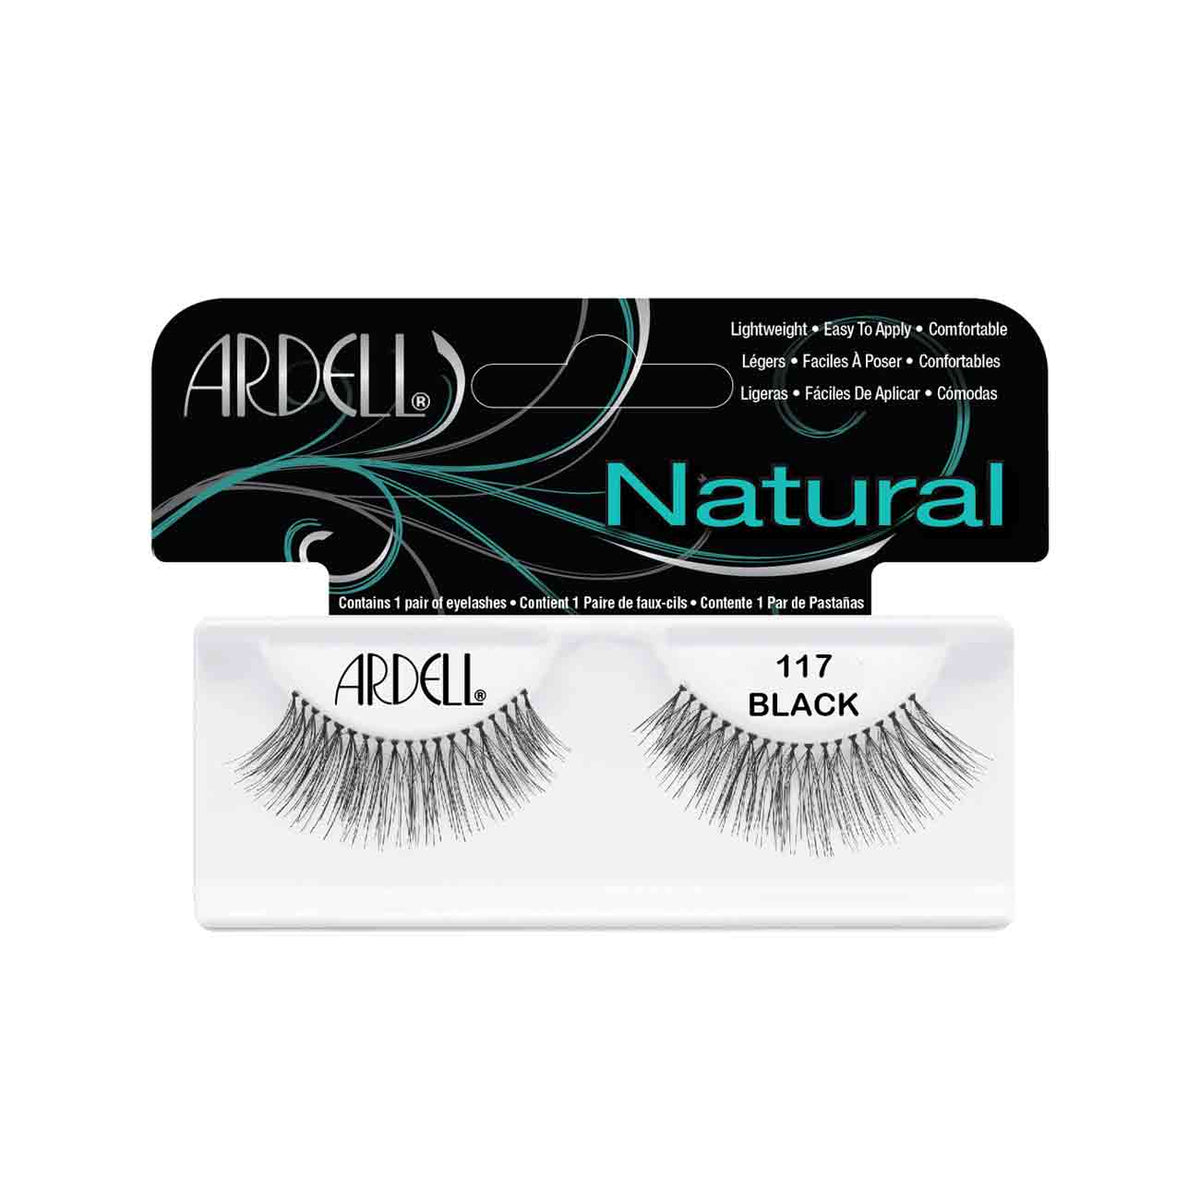 Ardell Natural Lash 117 Black